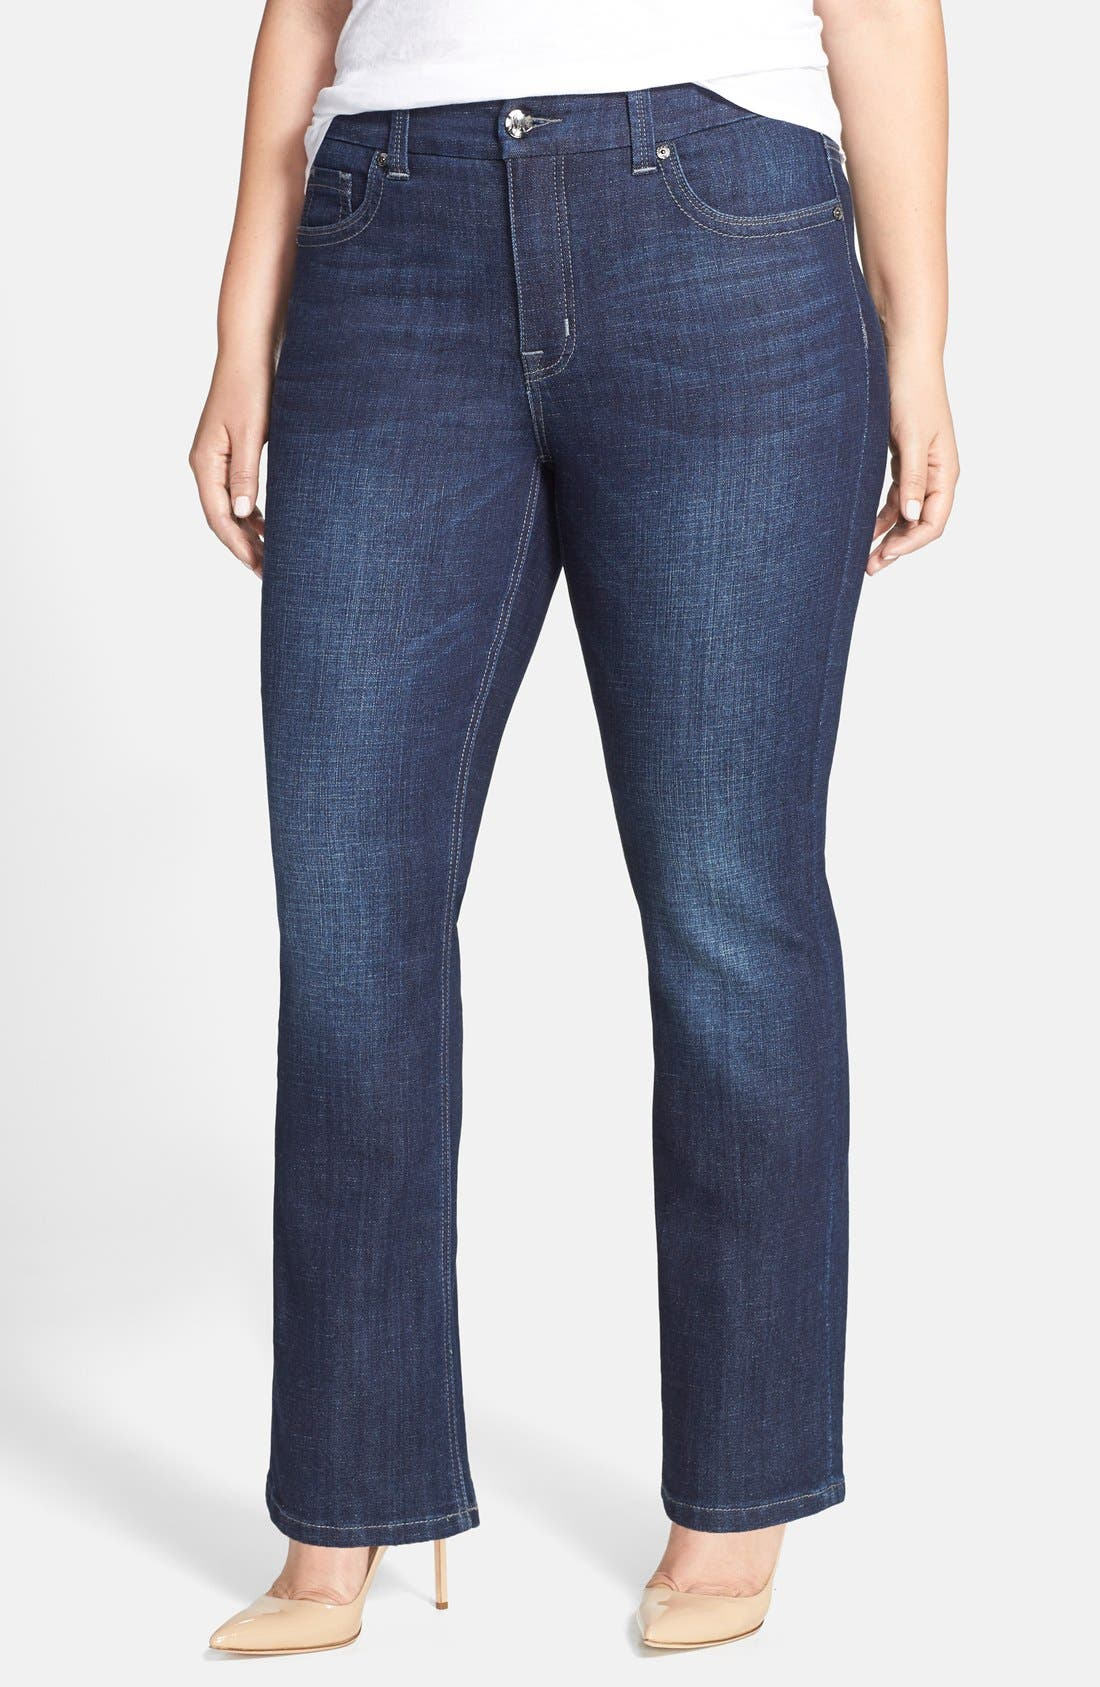 MELISSA MCCARTHY SEVEN7 Stretch Slim Bootcut Jeans